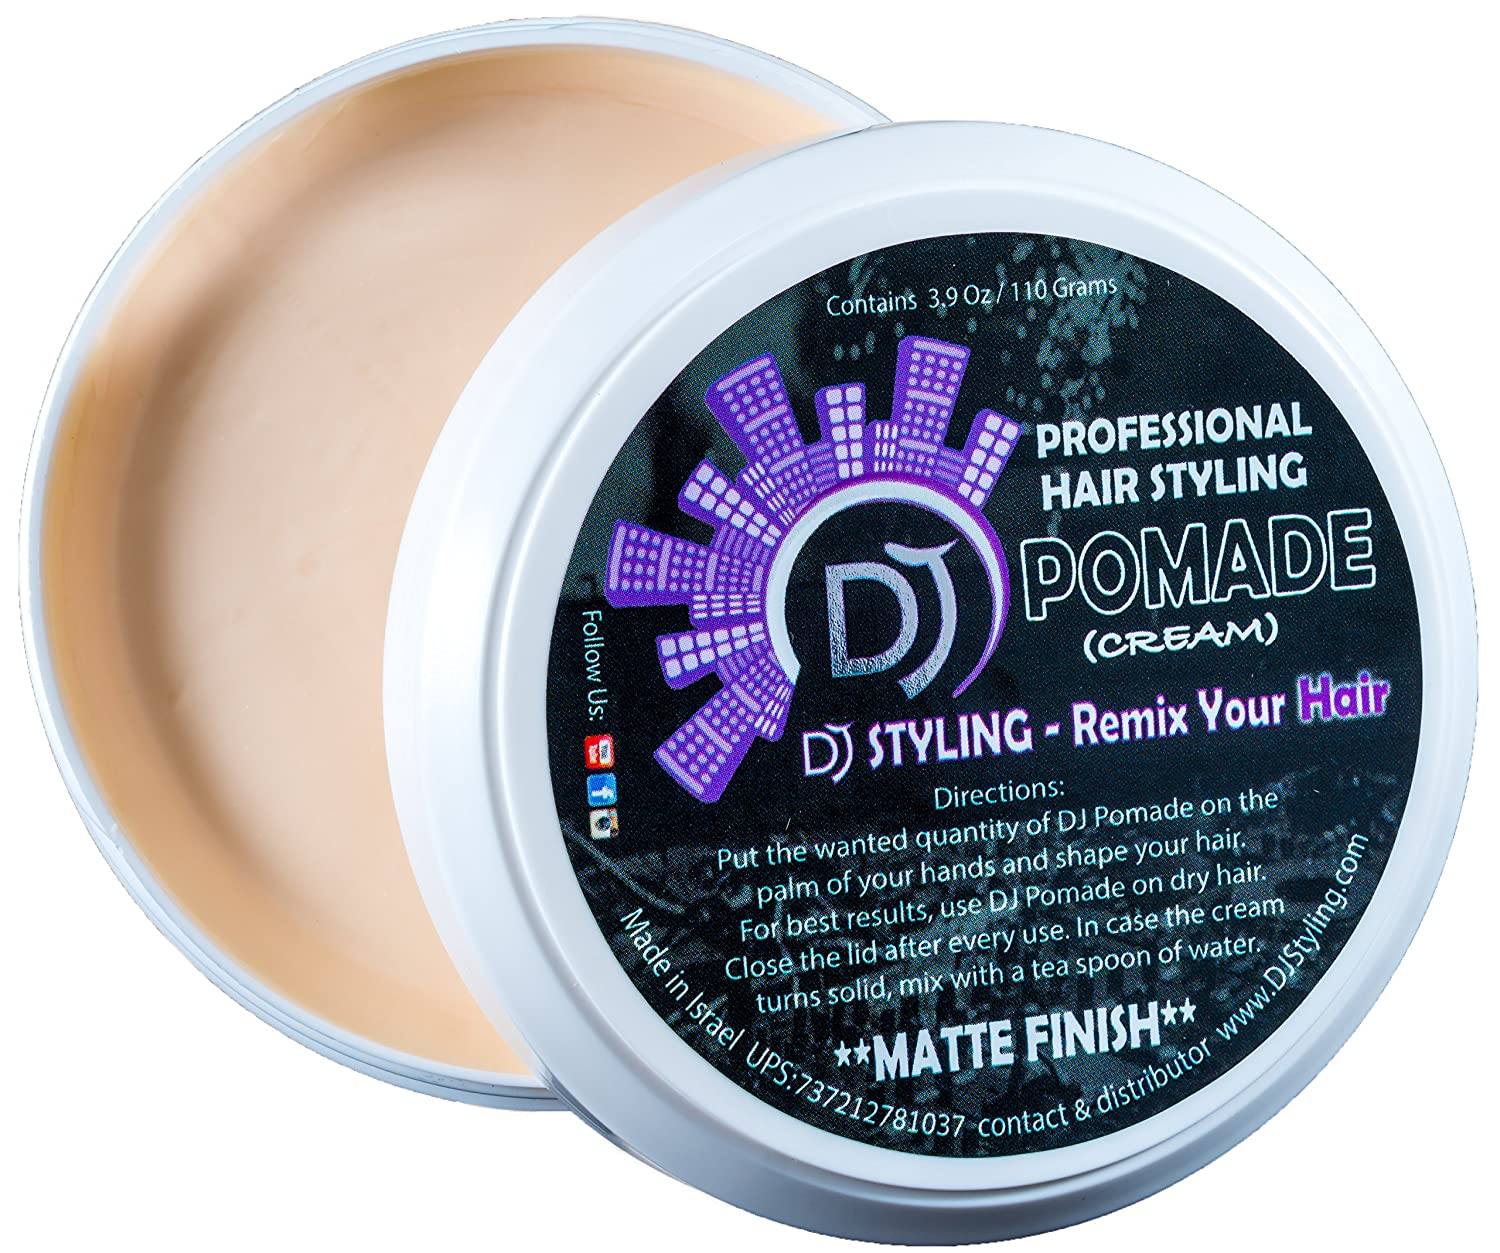 DJ Pomade - Hair Styling Cream - Matte Look - The Best Hair Clay for Elastic and Strong Hold - Professional Formula 3.9 Oz by D.J Hair Styling Shahar Skury Shivuk